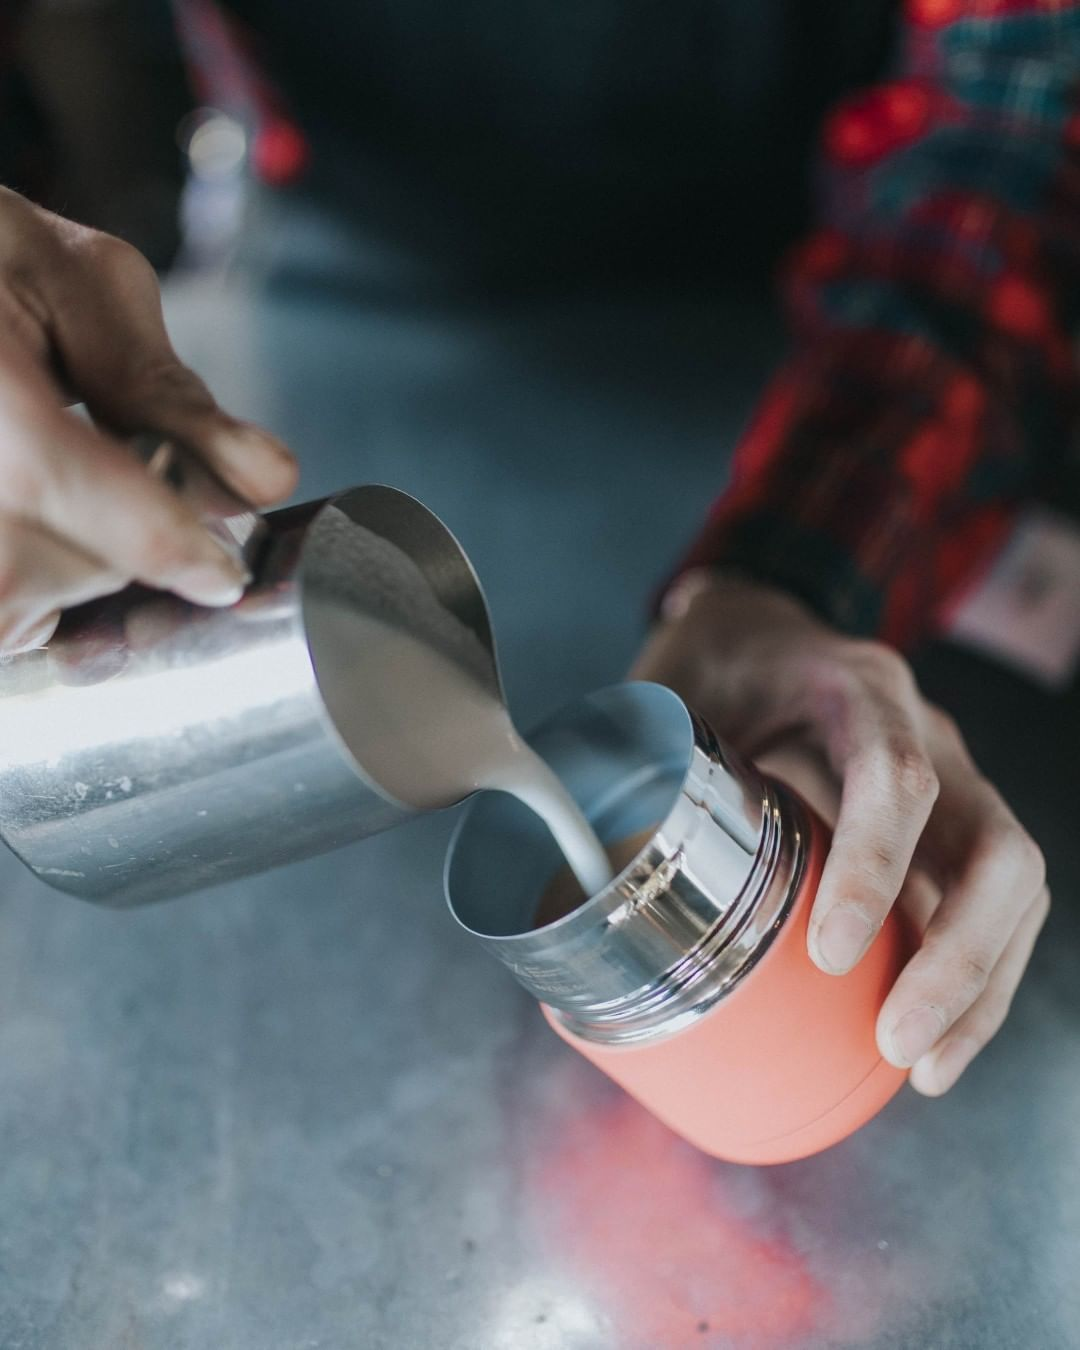 Frank Green On Instagram Our Ultimate Unbreakable Reusable Cup Features A Revolutionary Ceramic Inner Layer To Alway Reusable Cup Pure Products Reusable Cups